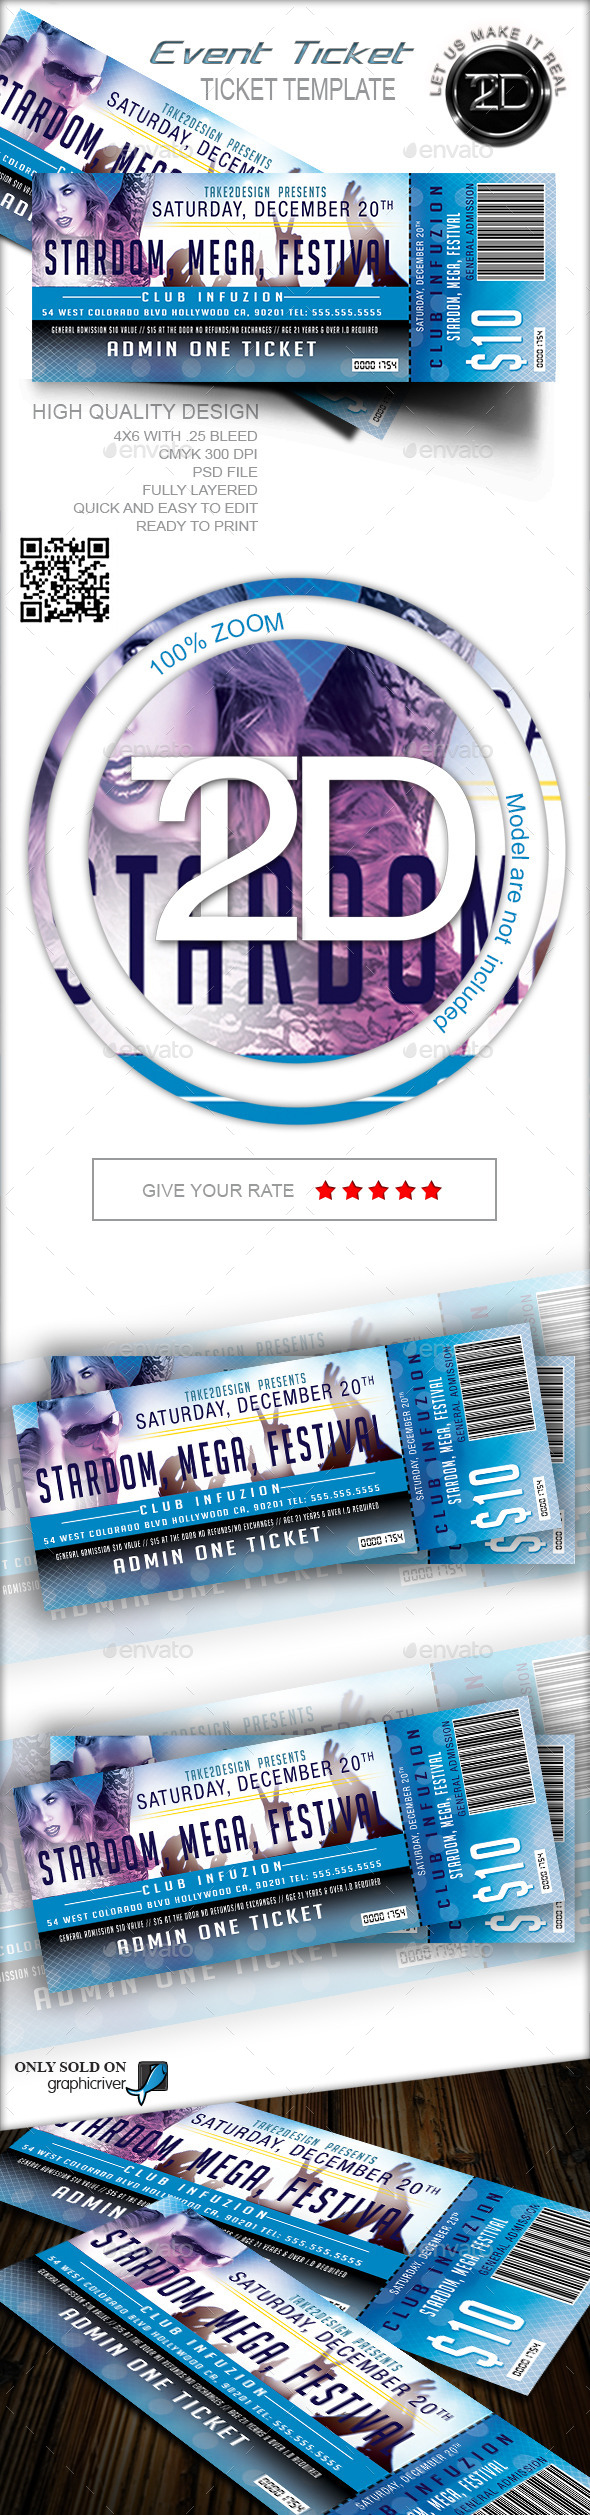 GraphicRiver Print Ready Event Ticket 9318614